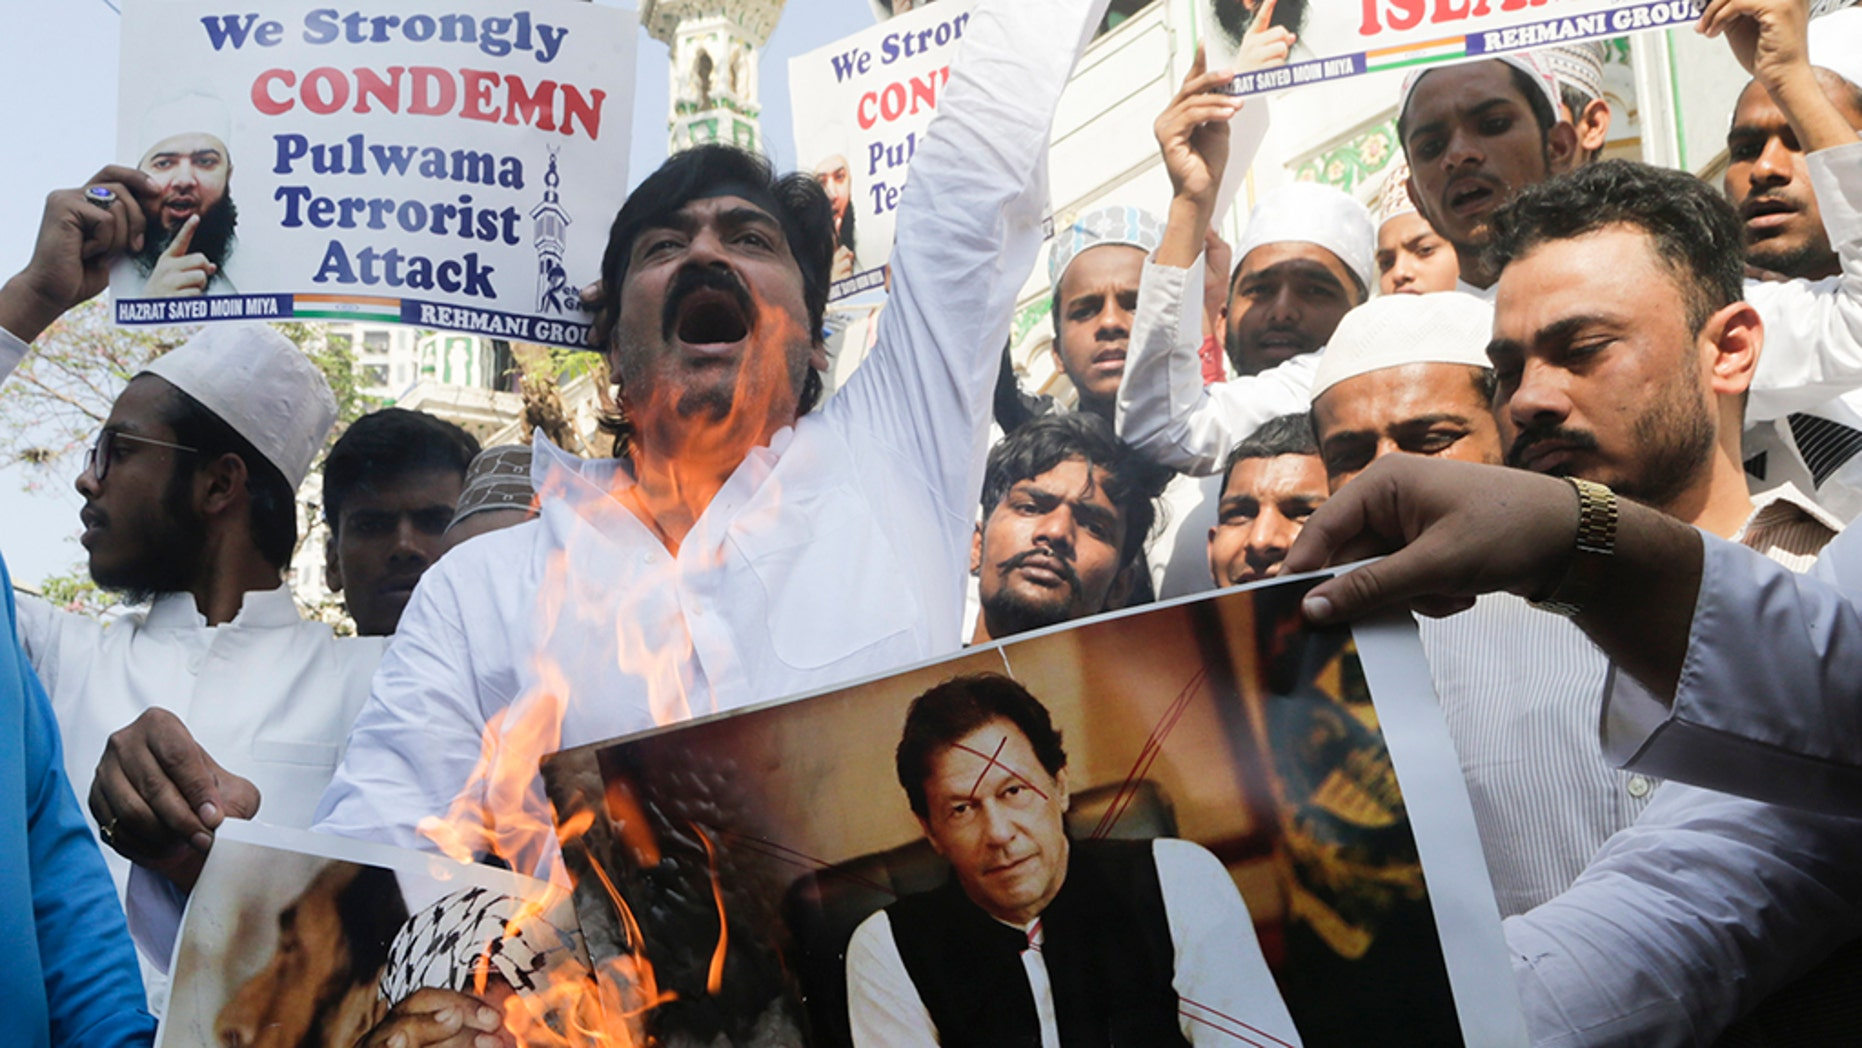 Indian Muslims burn posters of Pakistani prime minister Imran Khan, center, and Jaish-e-Mohammed leader Masood Azhar, during a protest against Thursday's attack on a paramilitary convoy in Kashmir that killed at least 40, in Mumbai, India, Friday.